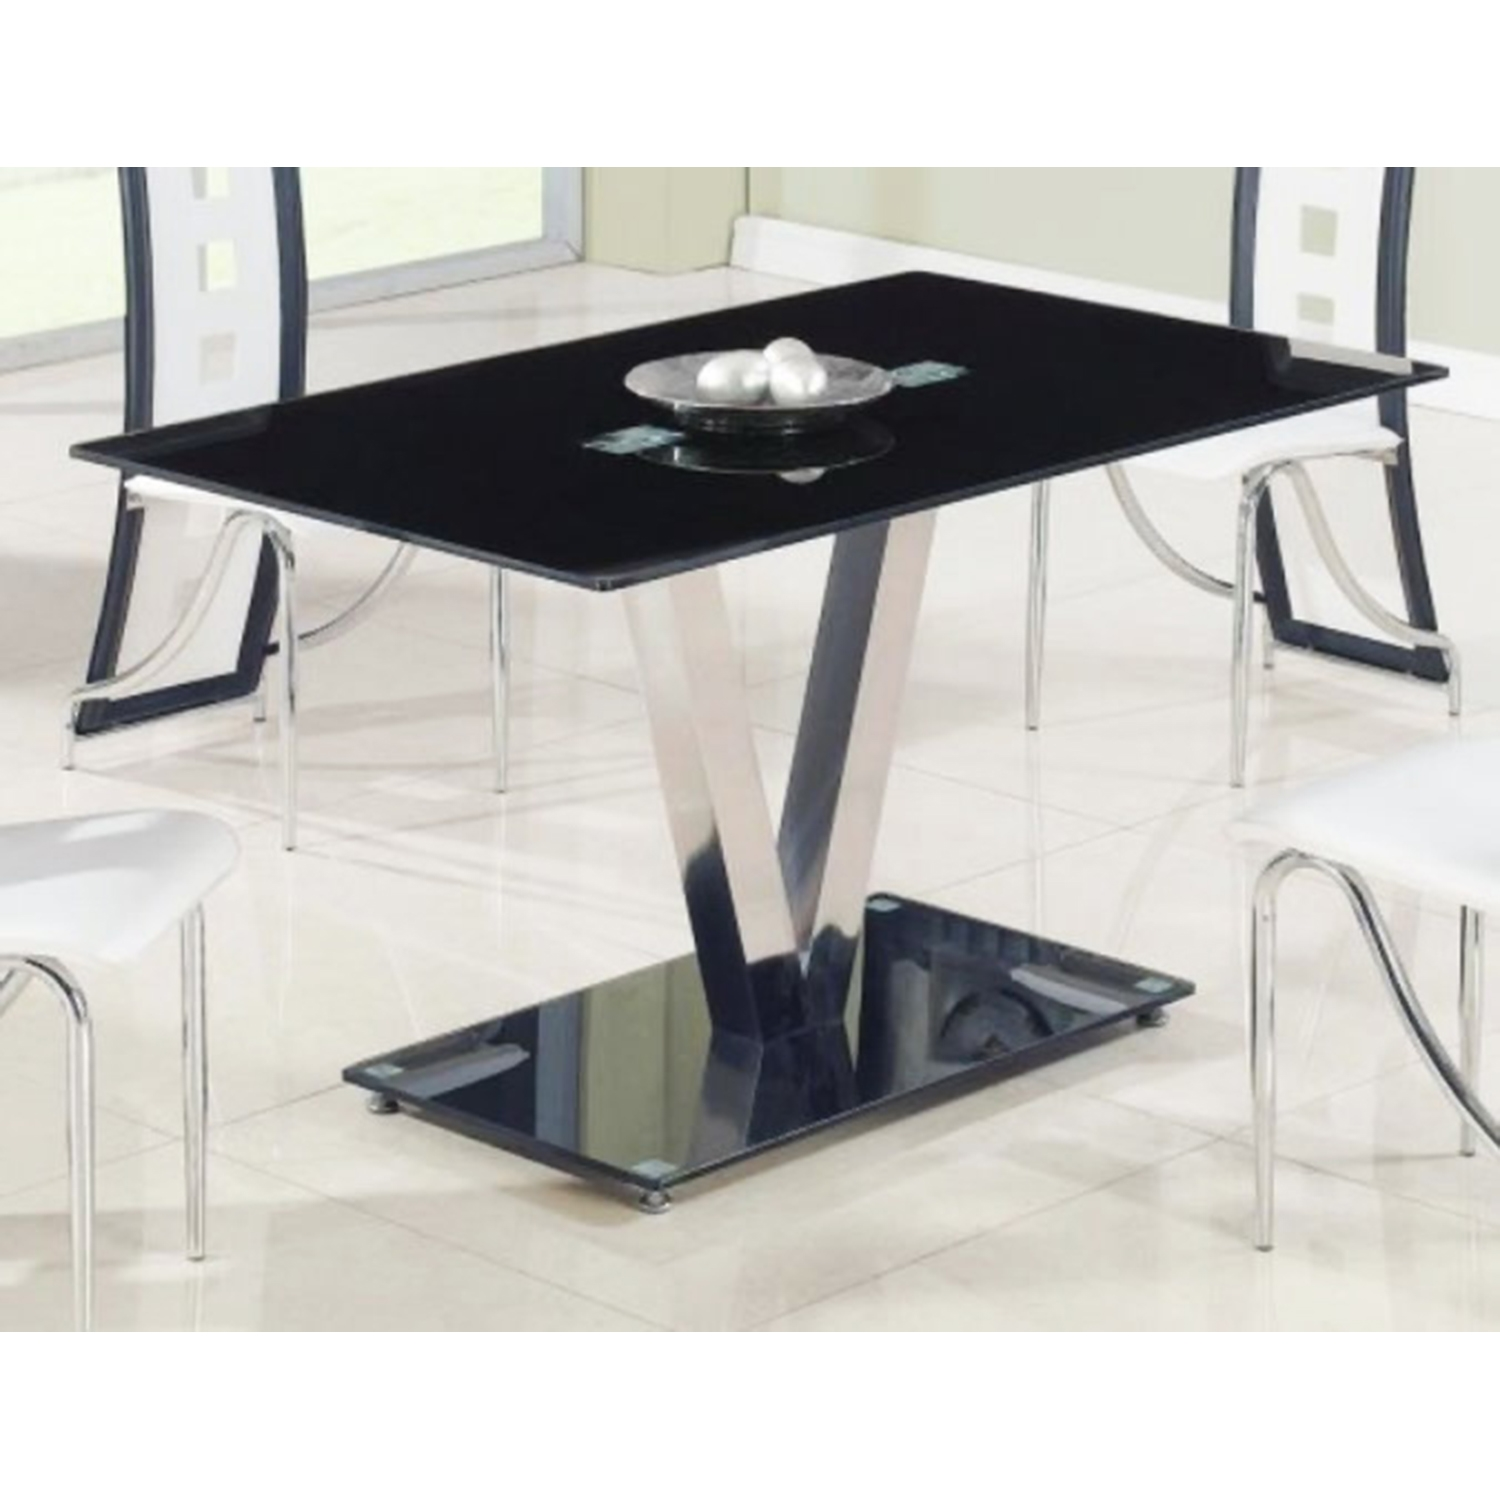 Kiara Dining Table - Black Glass, Stainless Steel Legs